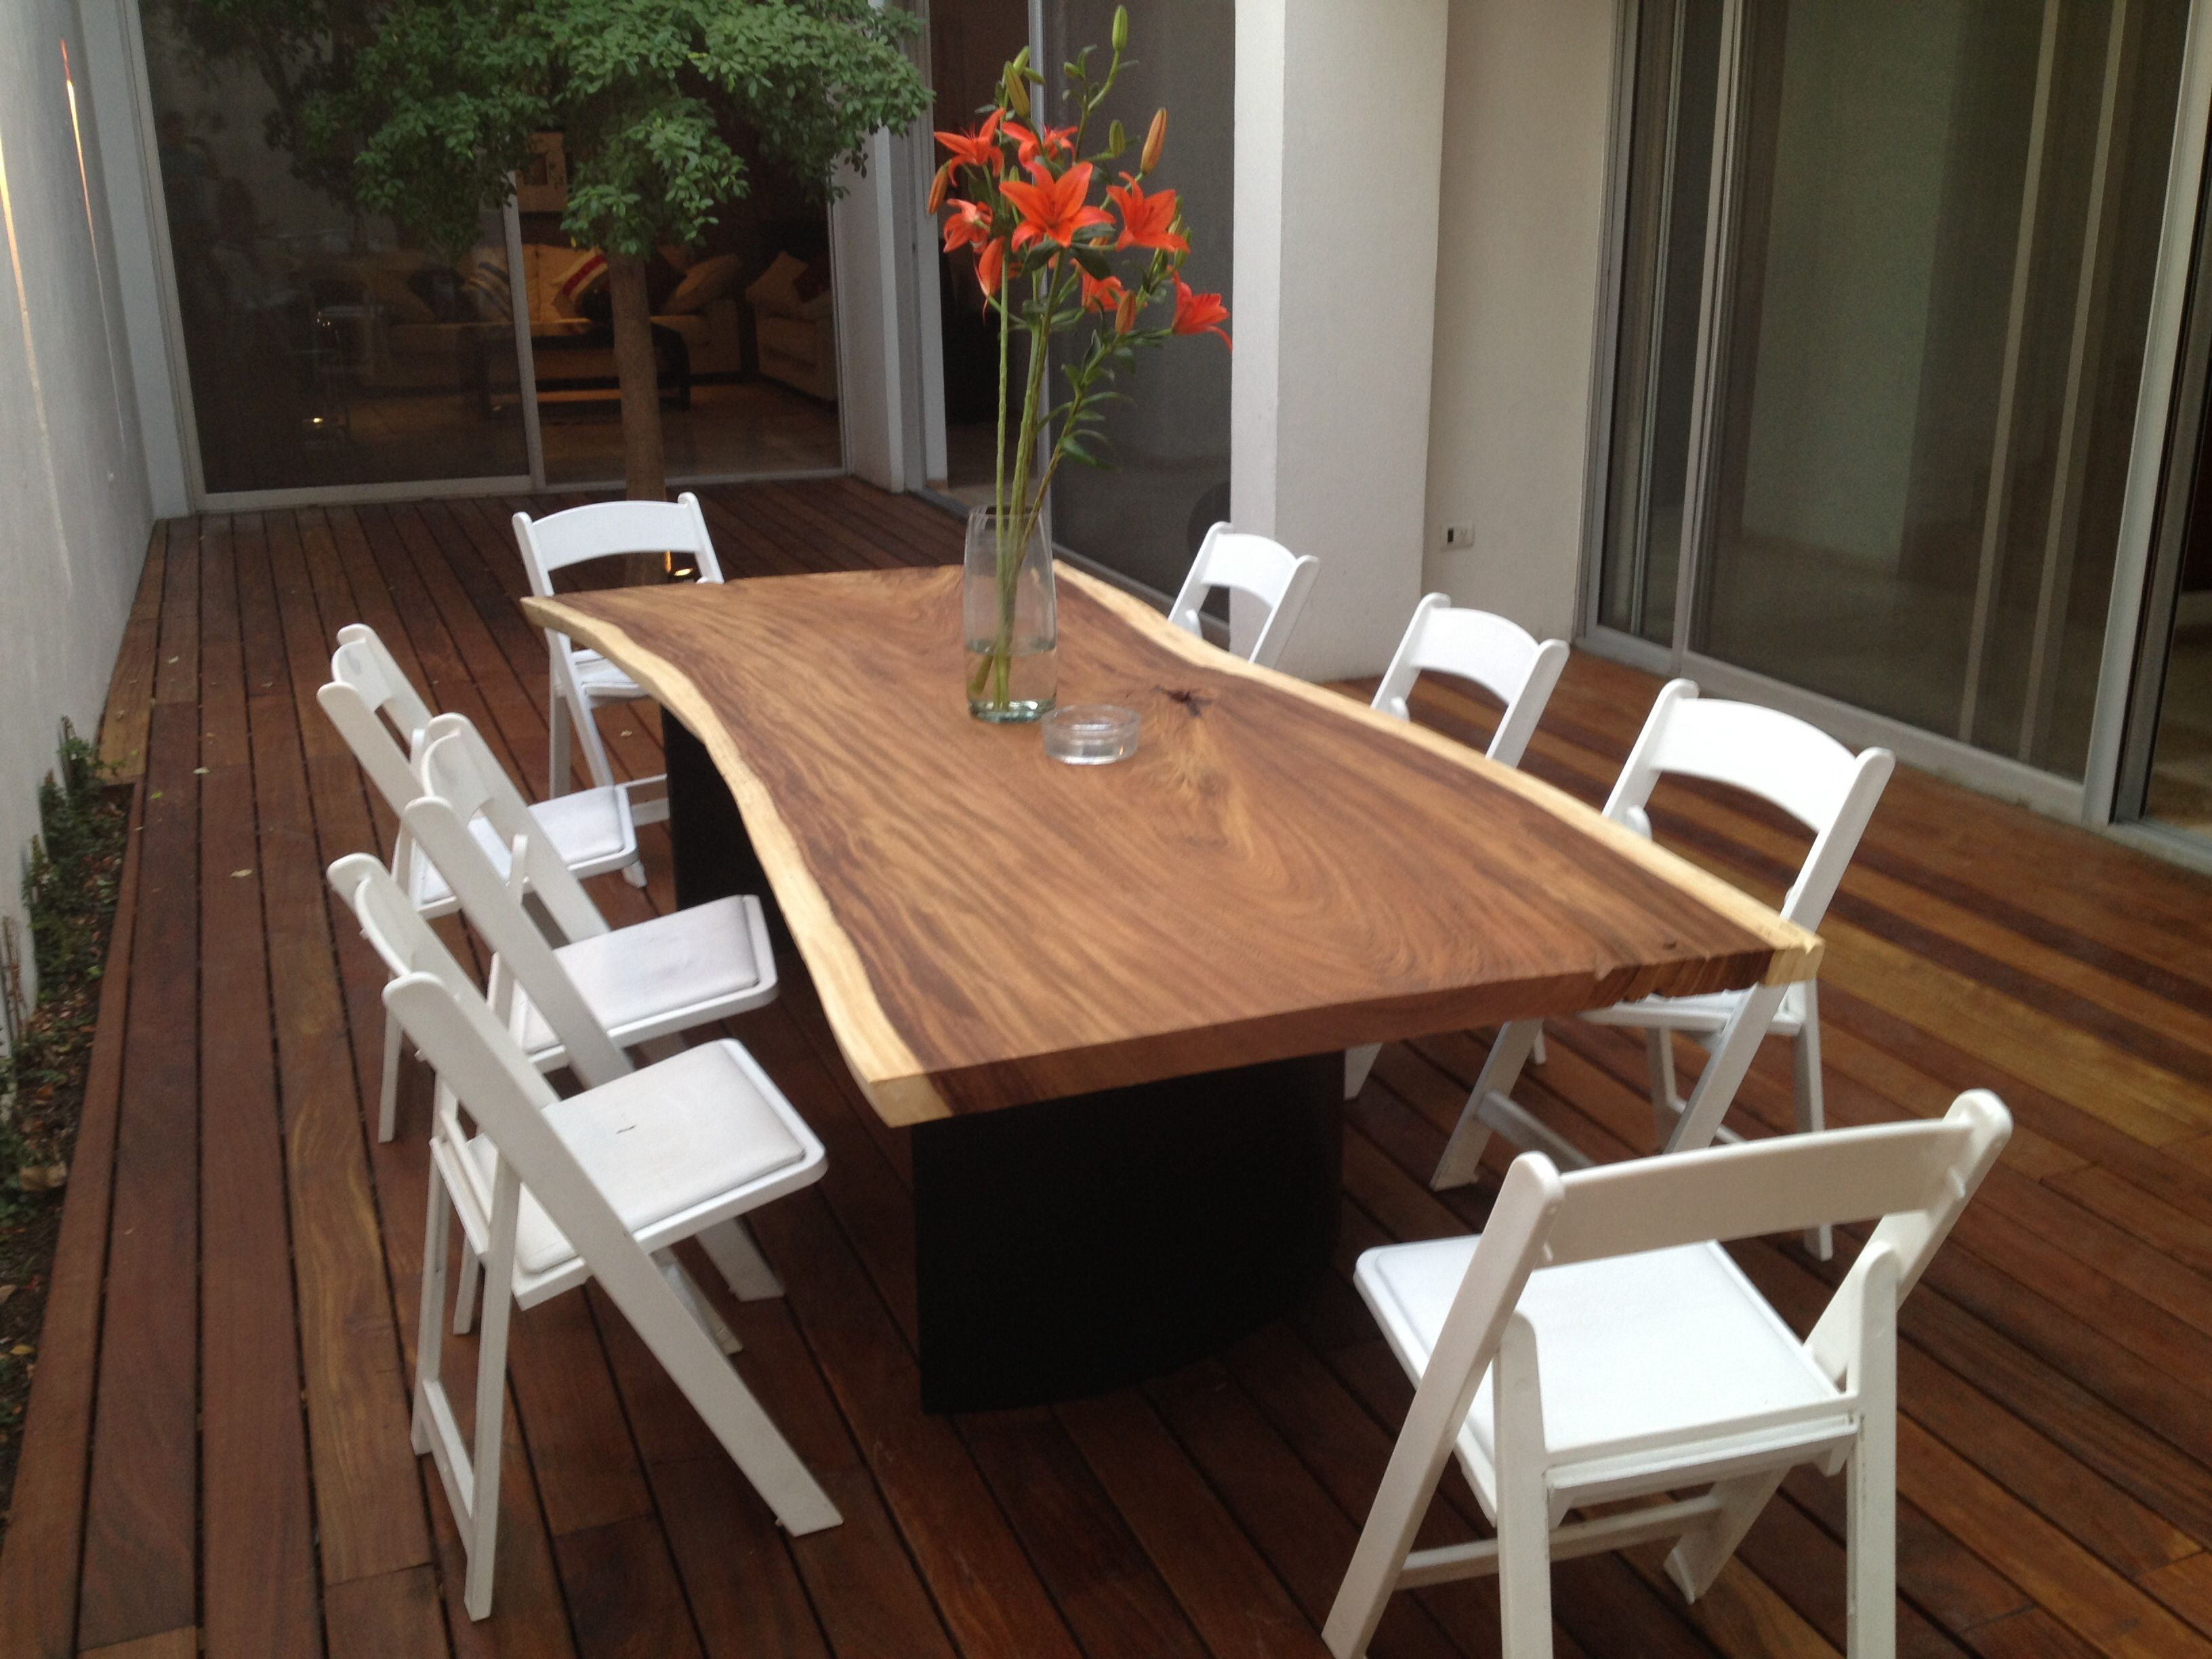 Captivating Terrace Deck And Parota Dining Table